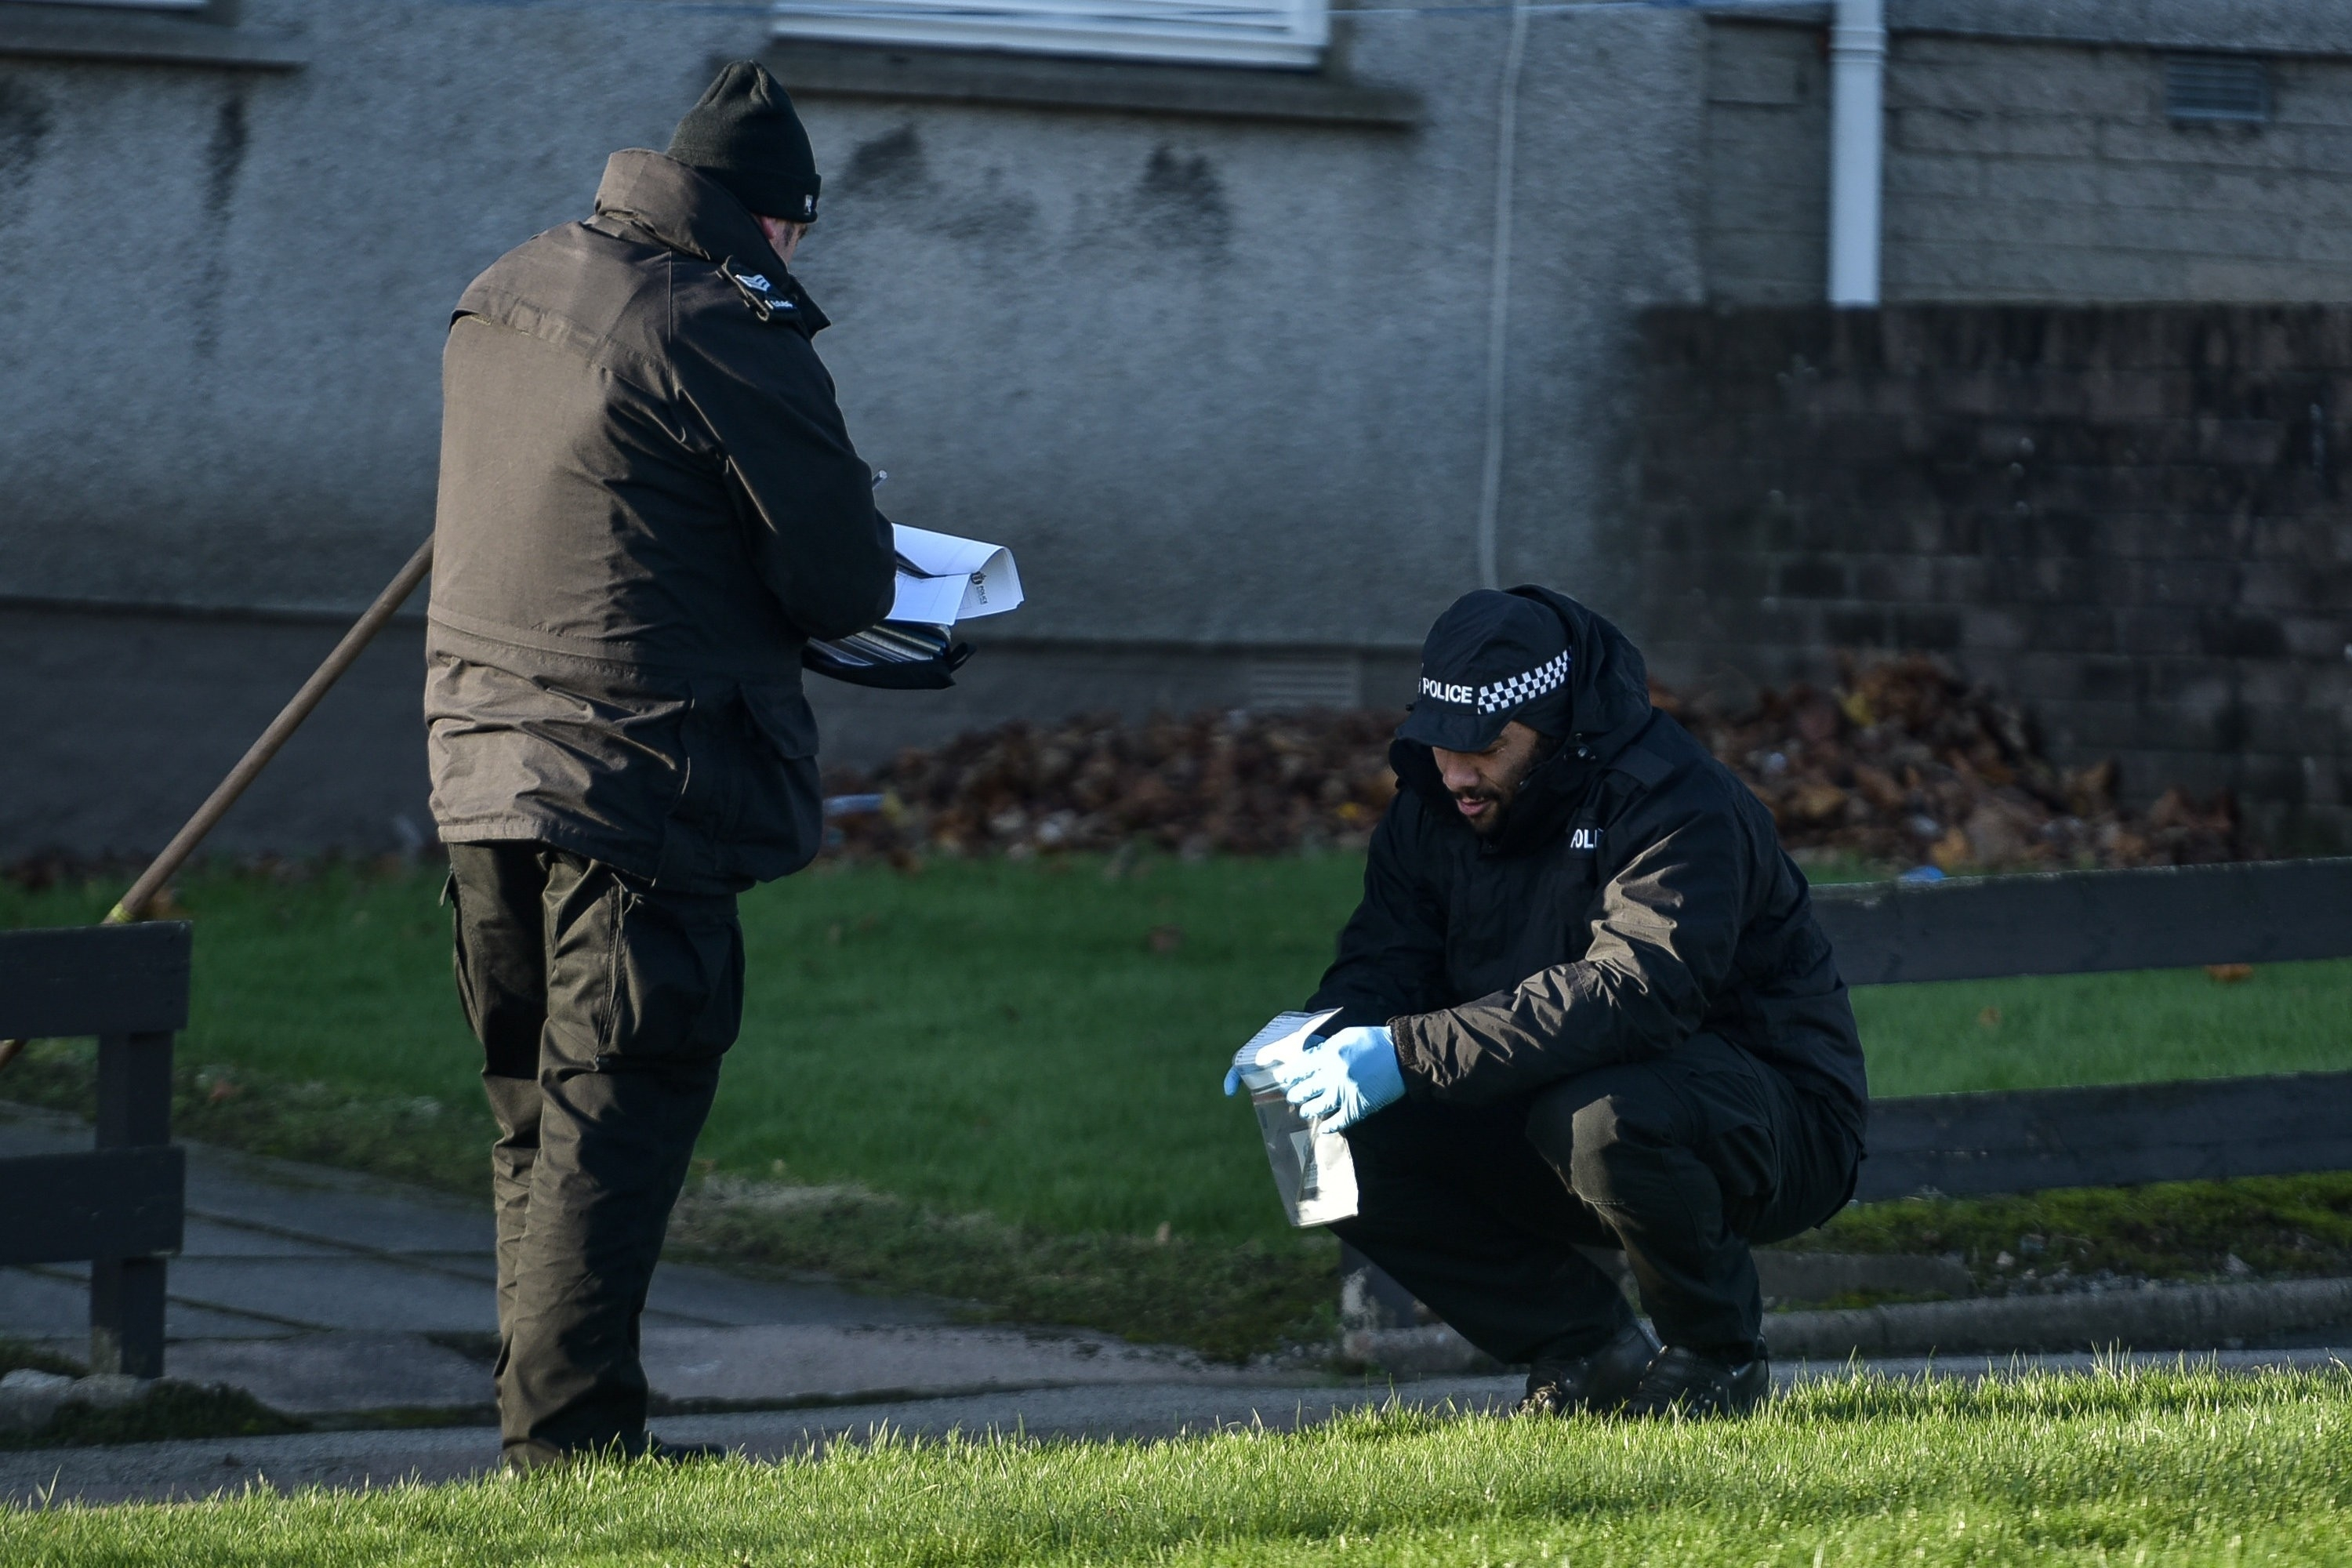 A Police officer is seen with a metal object in an evidence bag on Foresterhill Road